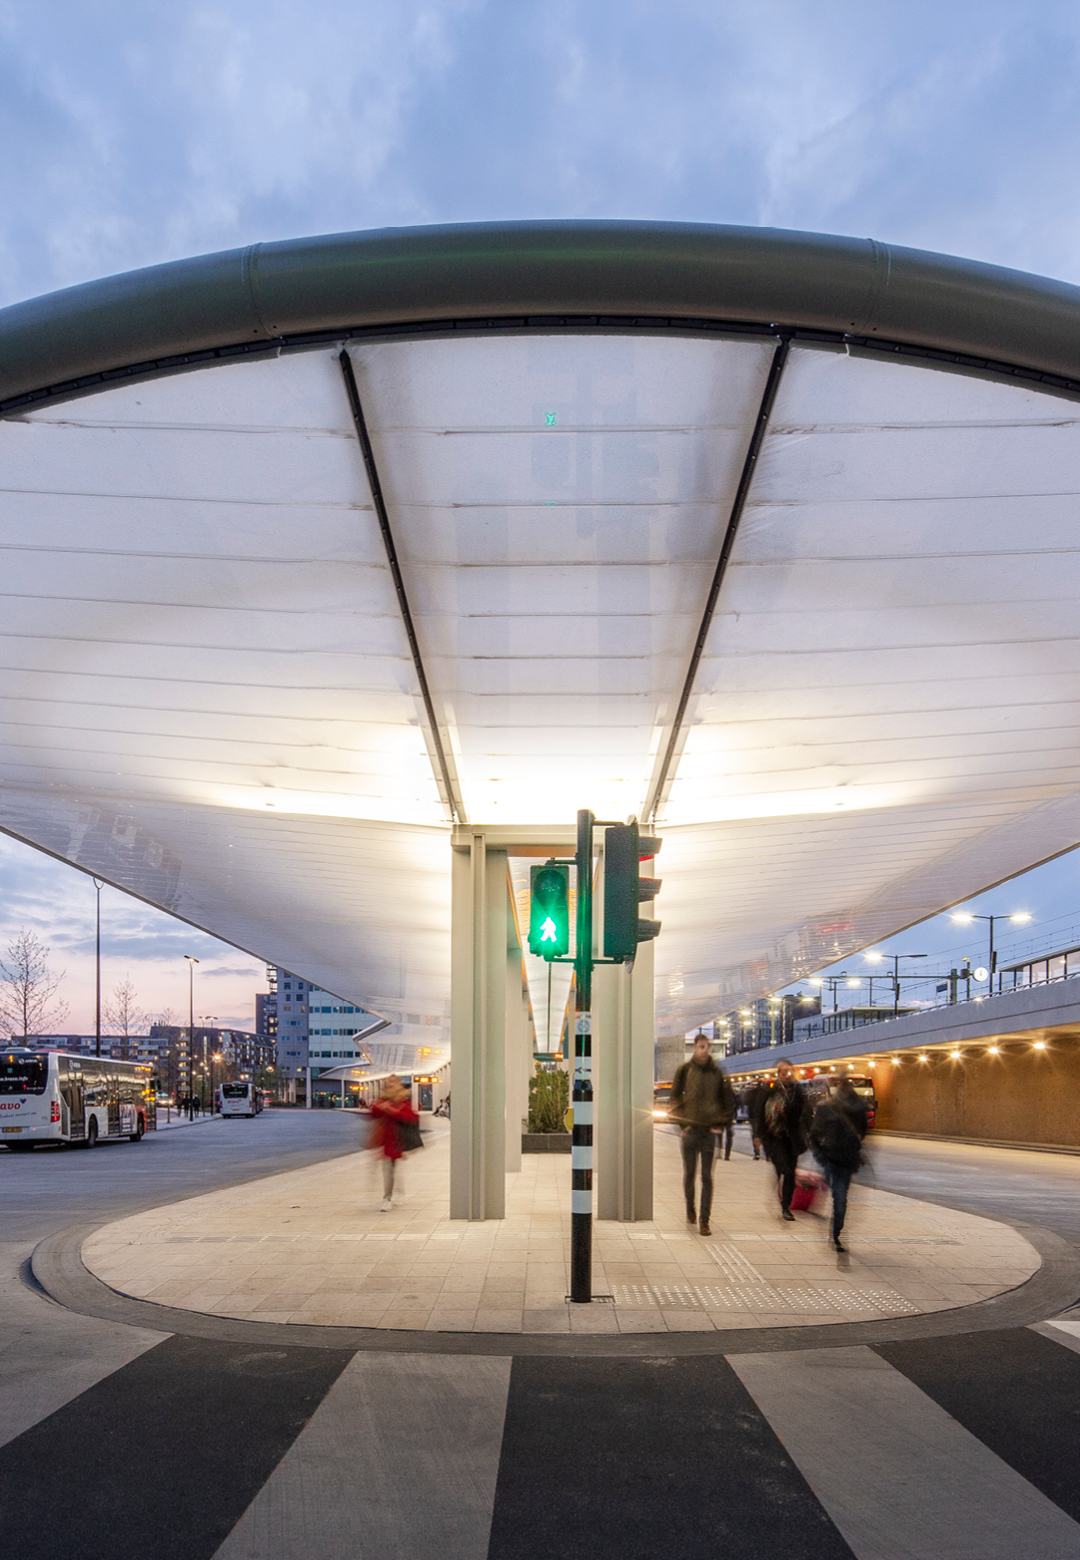 The Tilburg bus station designed by Cepezed is a sustainable facility that generates its own energy  Tilburg Bus Station  Cepezed  STIR